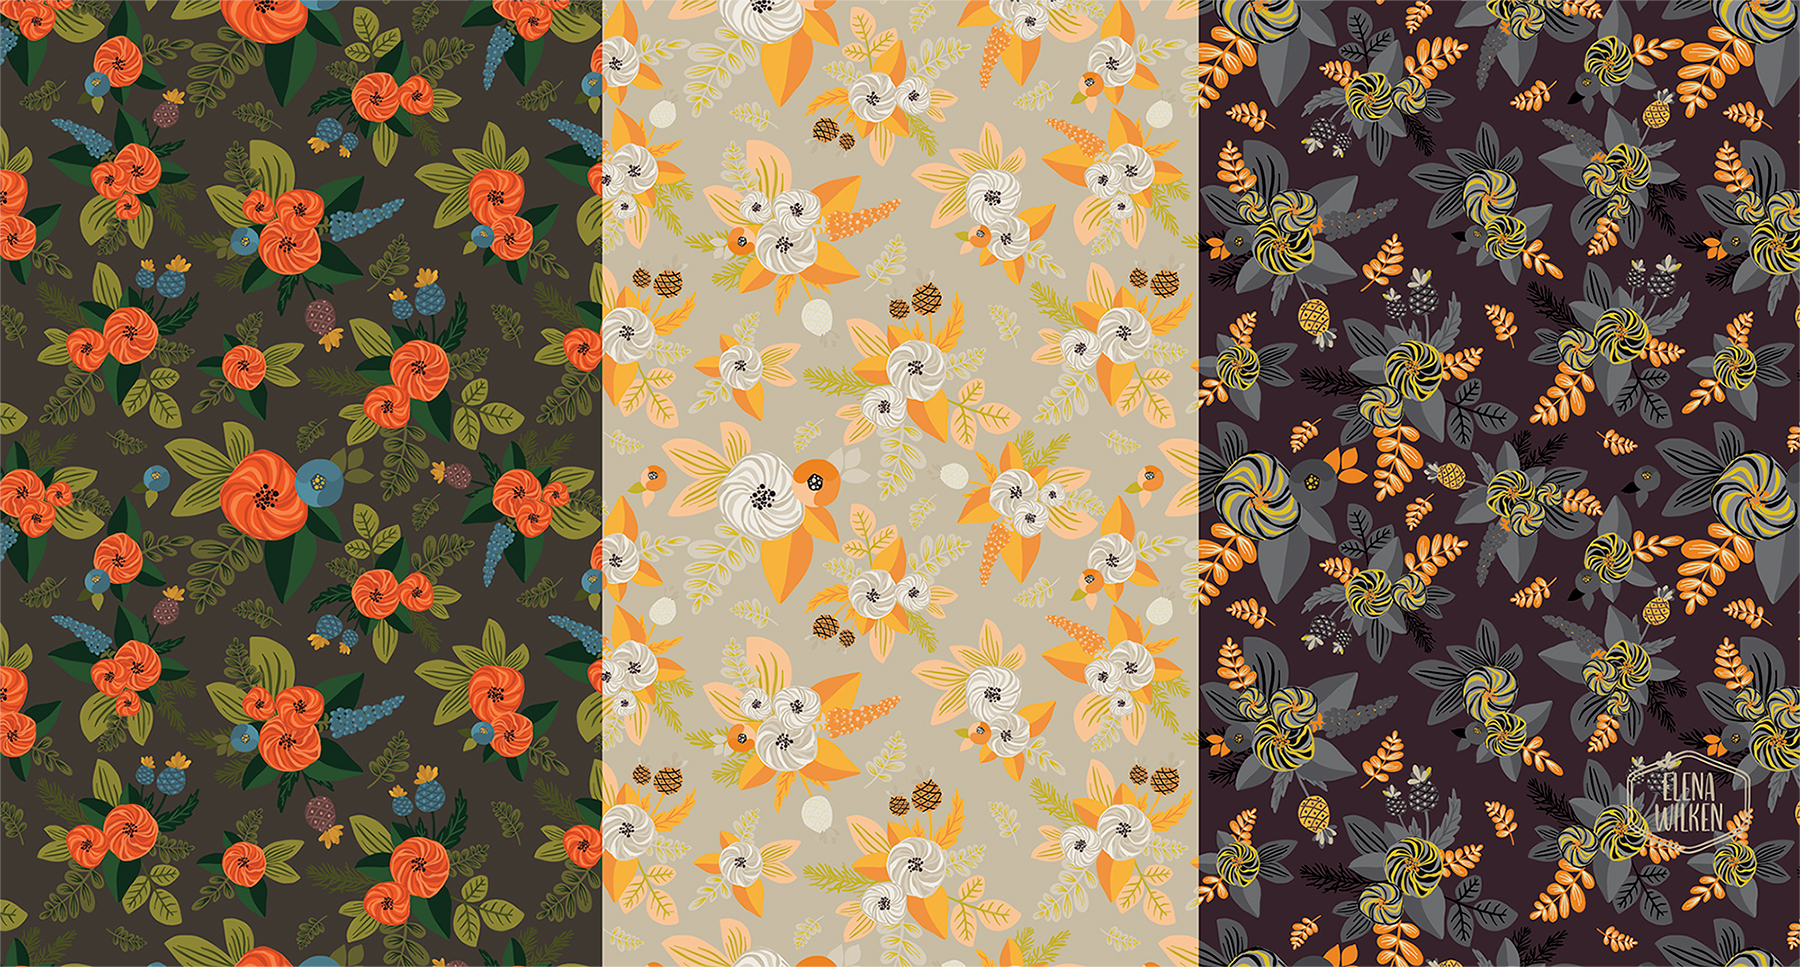 vector illustrations turned into a seamless floral surface pattern design - more color explorations